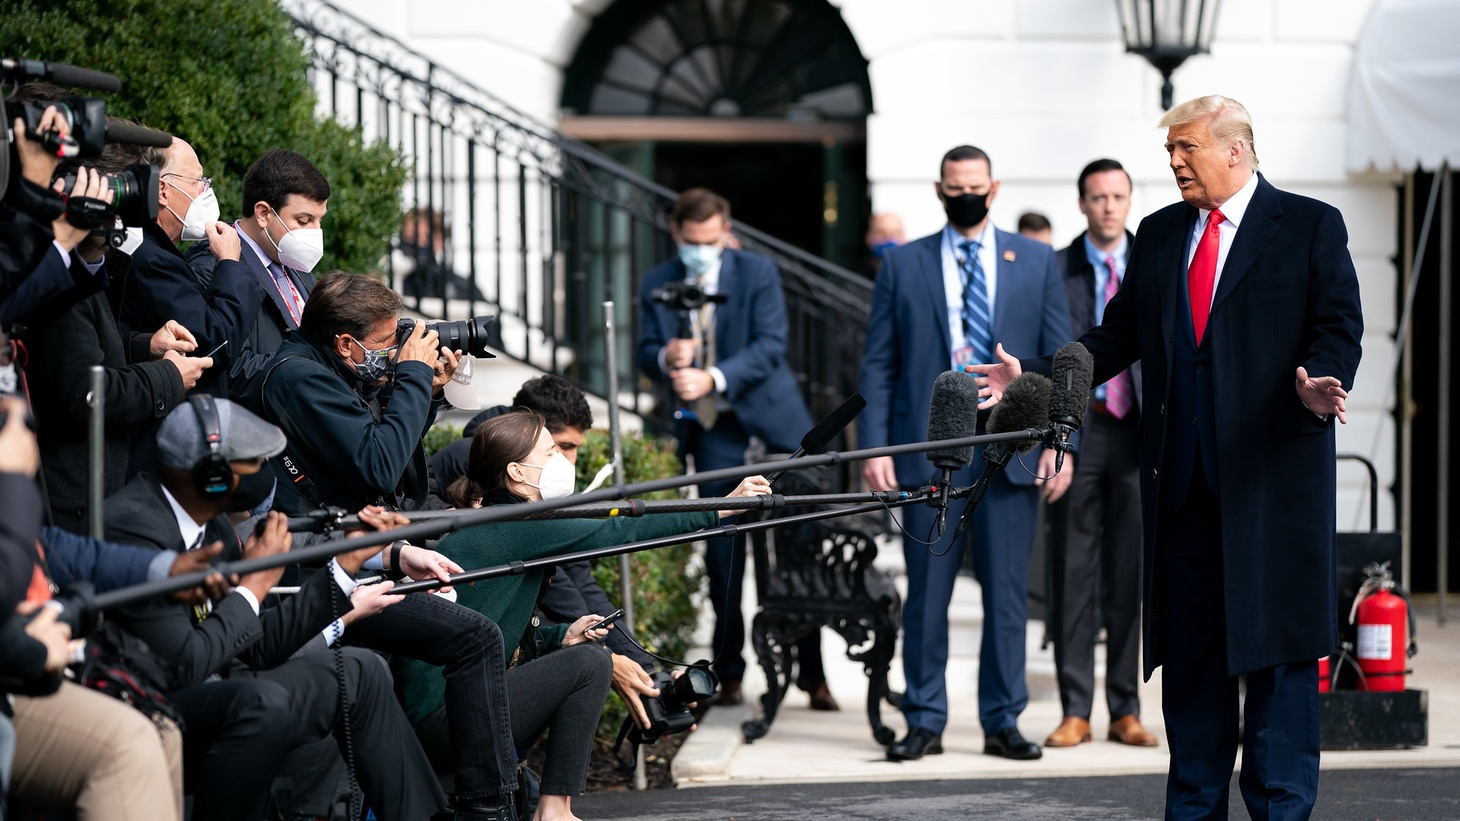 President Donald J. Trump talks to members of the press along the South Lawn driveway of the White House Friday, Oct. 30, 2020, prior to boarding Marine One en route to Joint Base Andrews, Md. to begin his trip to Michigan, Wisconsin and Minnesota.